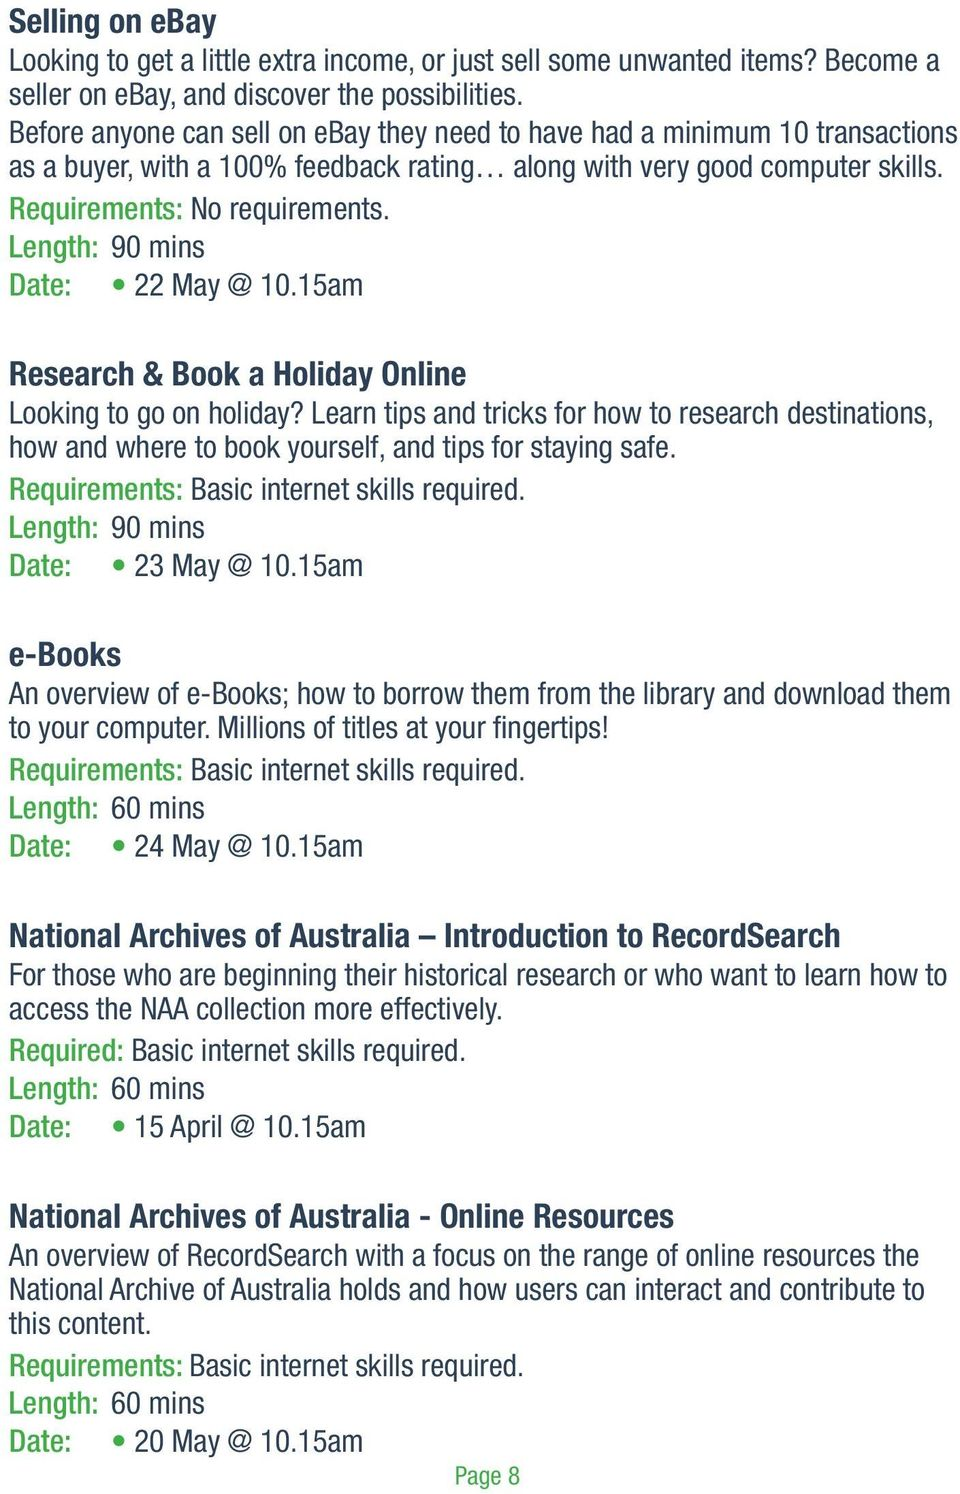 Date: 22 May @ 10.15am Research & Book a Holiday Online Looking to go on holiday? Learn tips and tricks for how to research destinations, how and where to book yourself, and tips for staying safe.